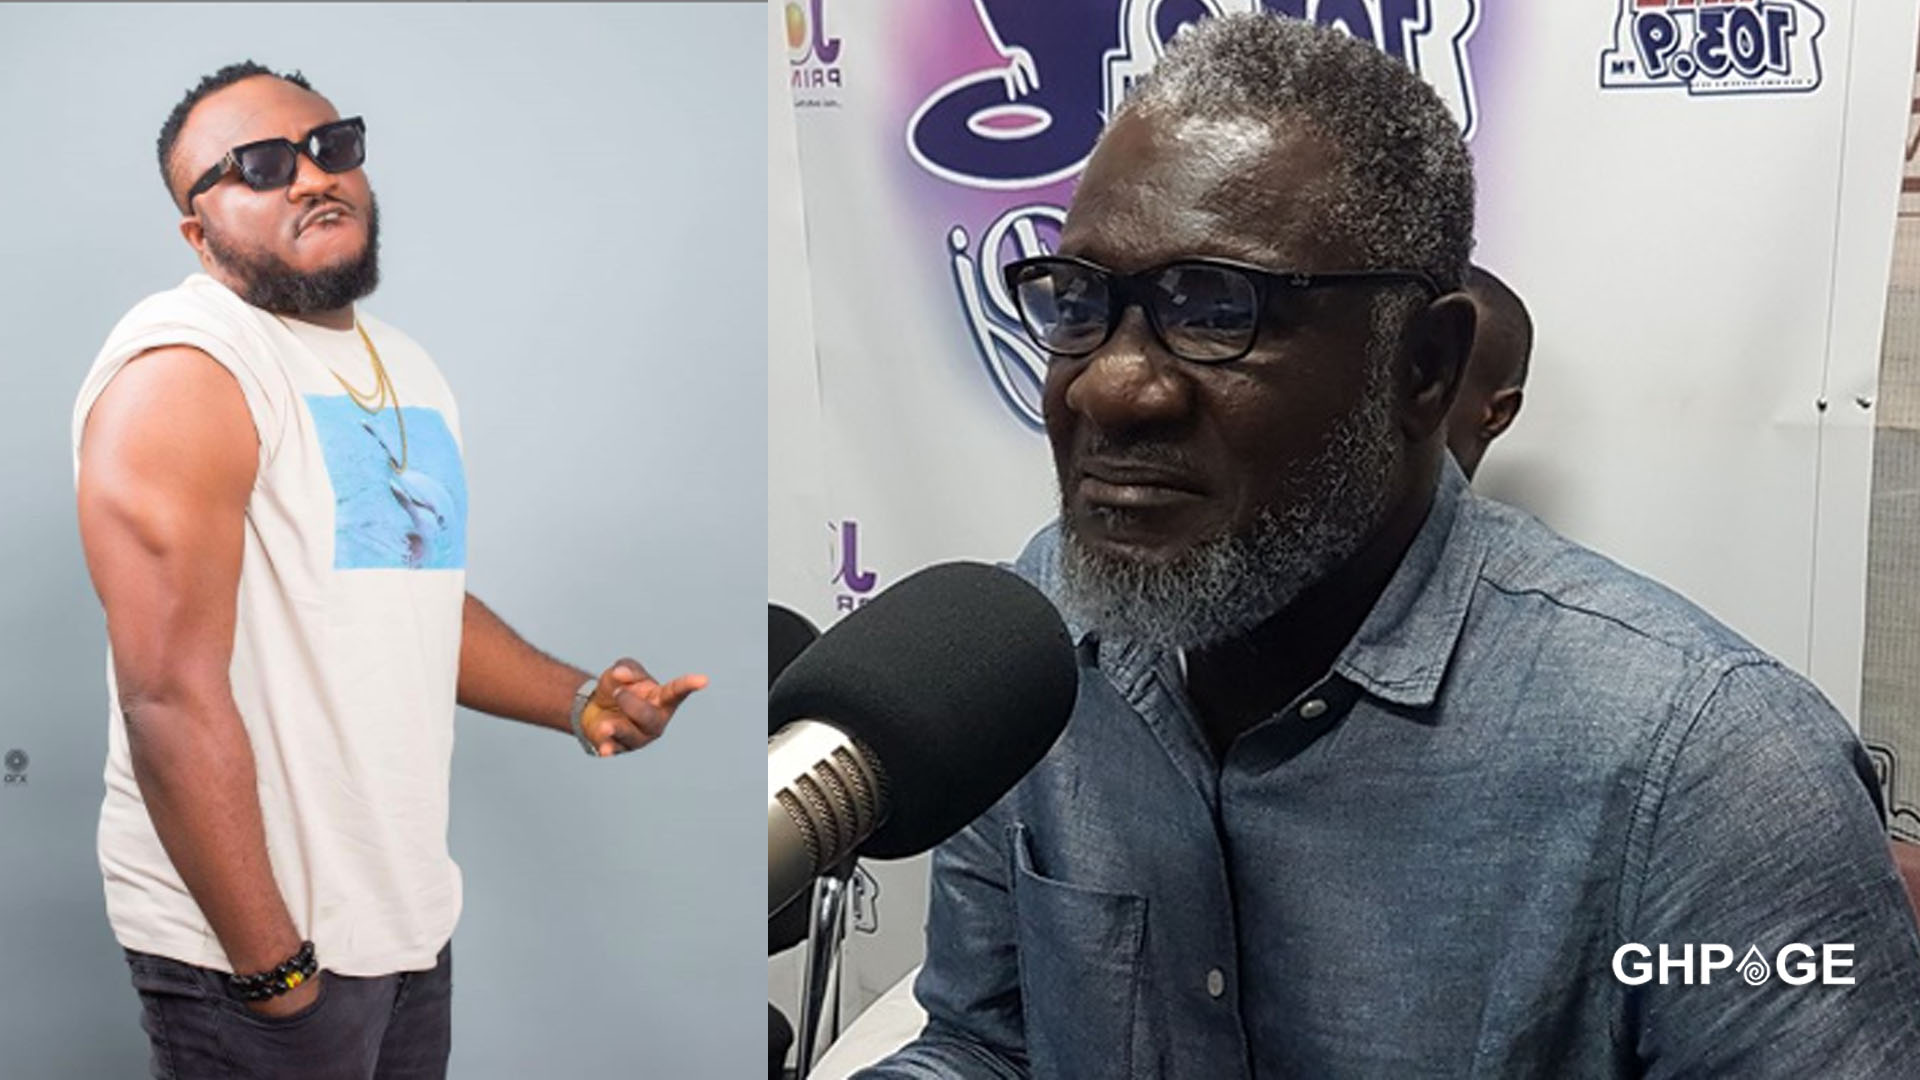 I'm happy they stole from you – DKB mocks Starboy Kwarteng